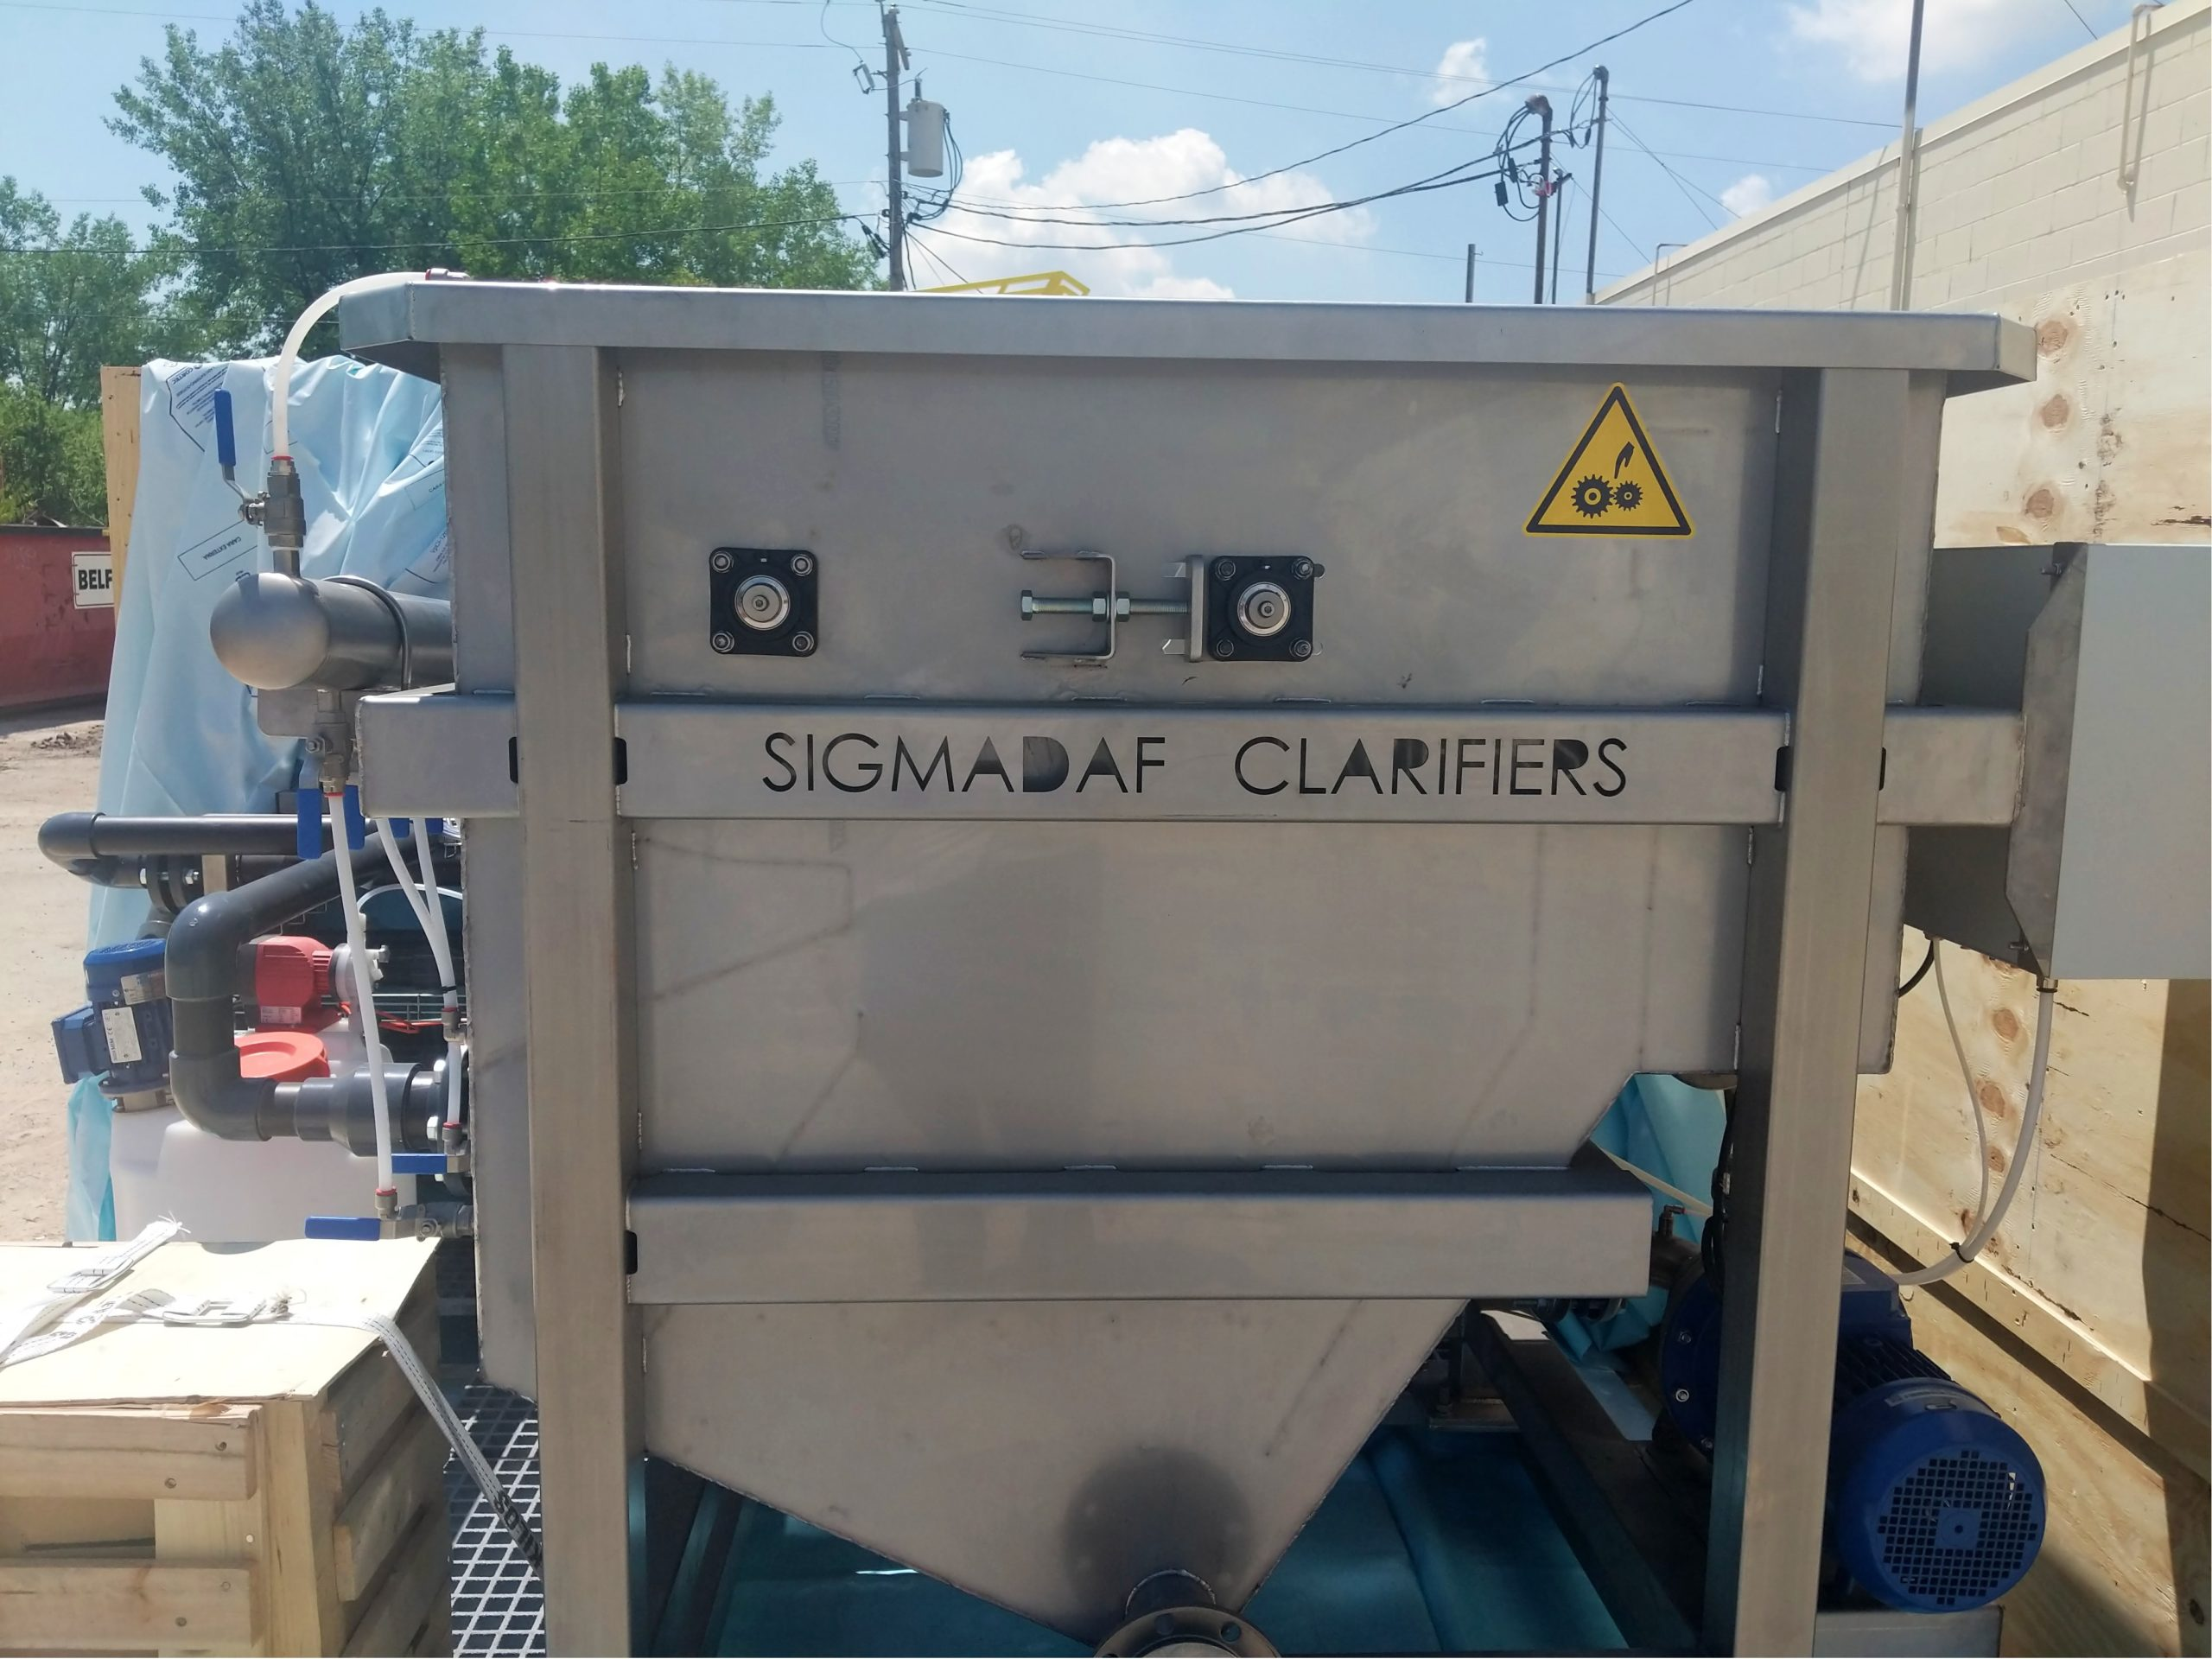 A large stainless steel tank pictured outside with SigmaDAF Clarifiers stamped into it.